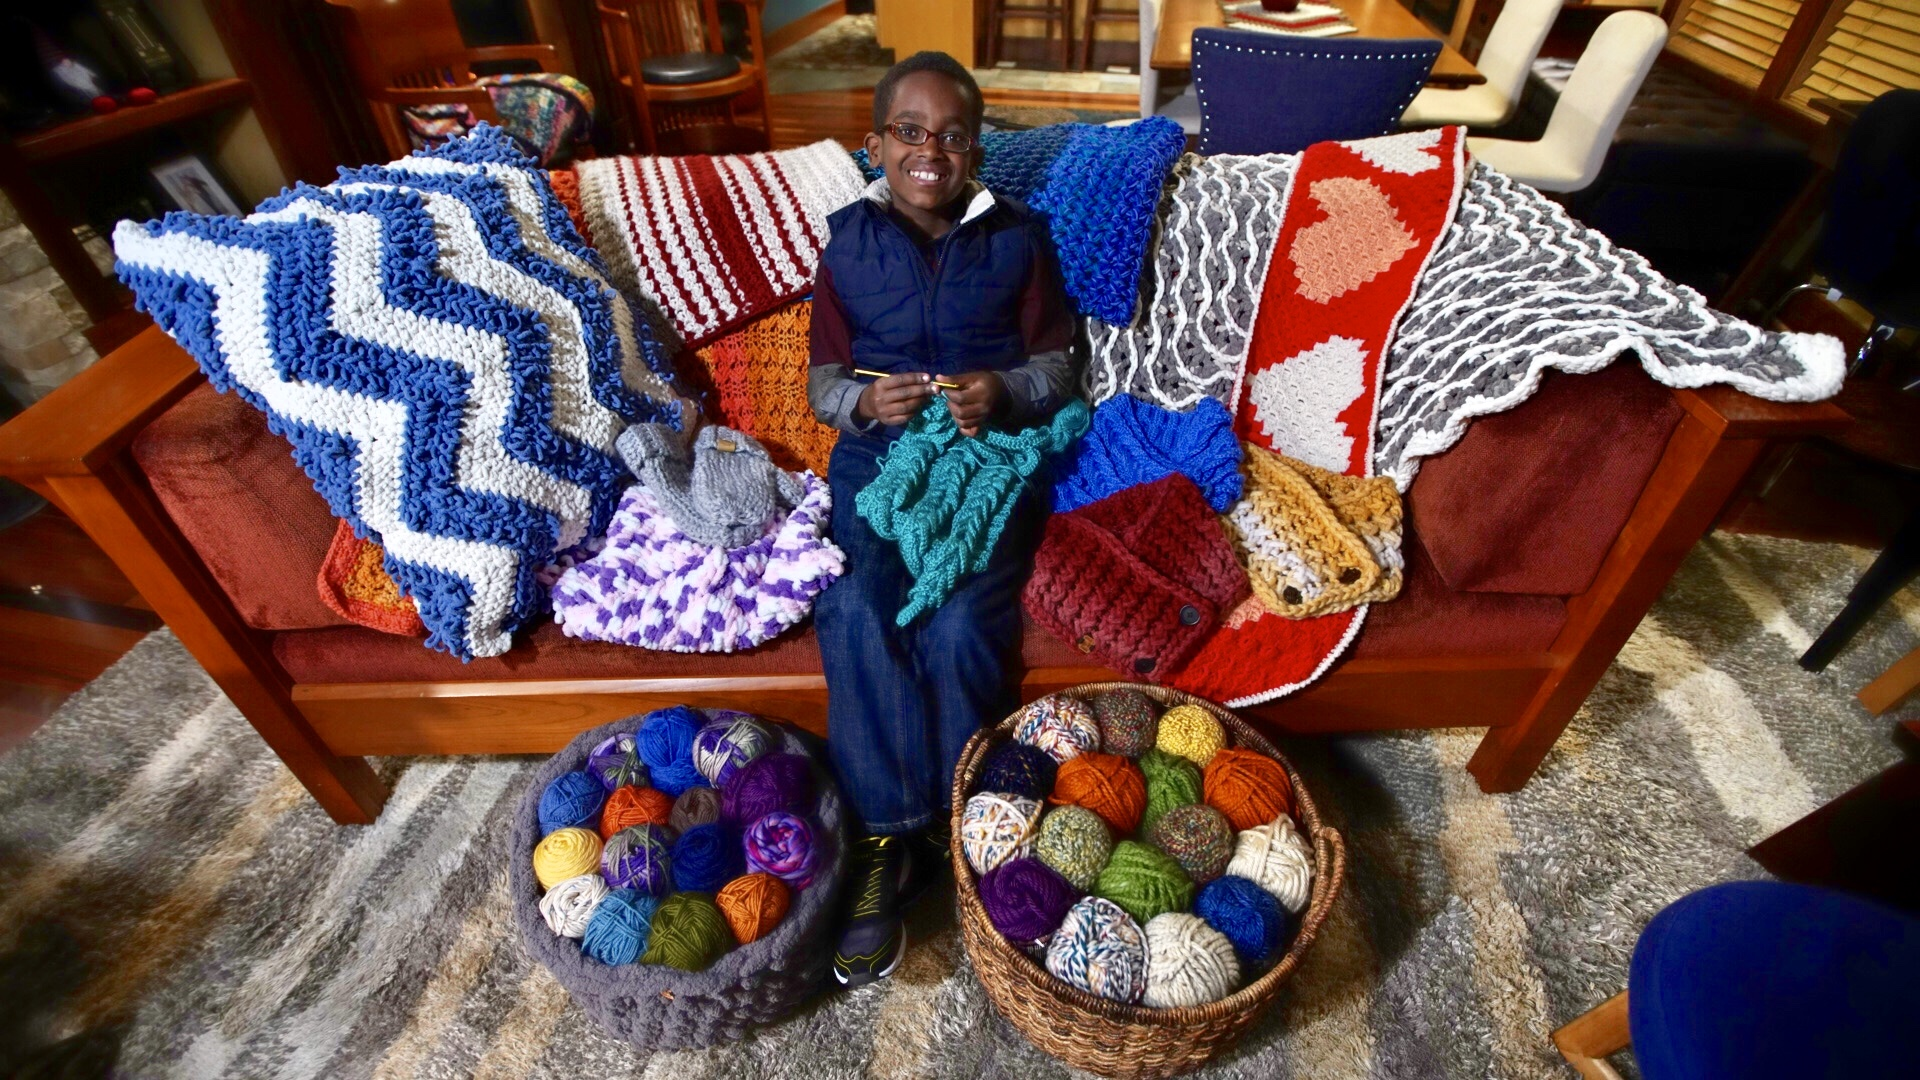 Boy sitting on a couch surrounded by crocheted things